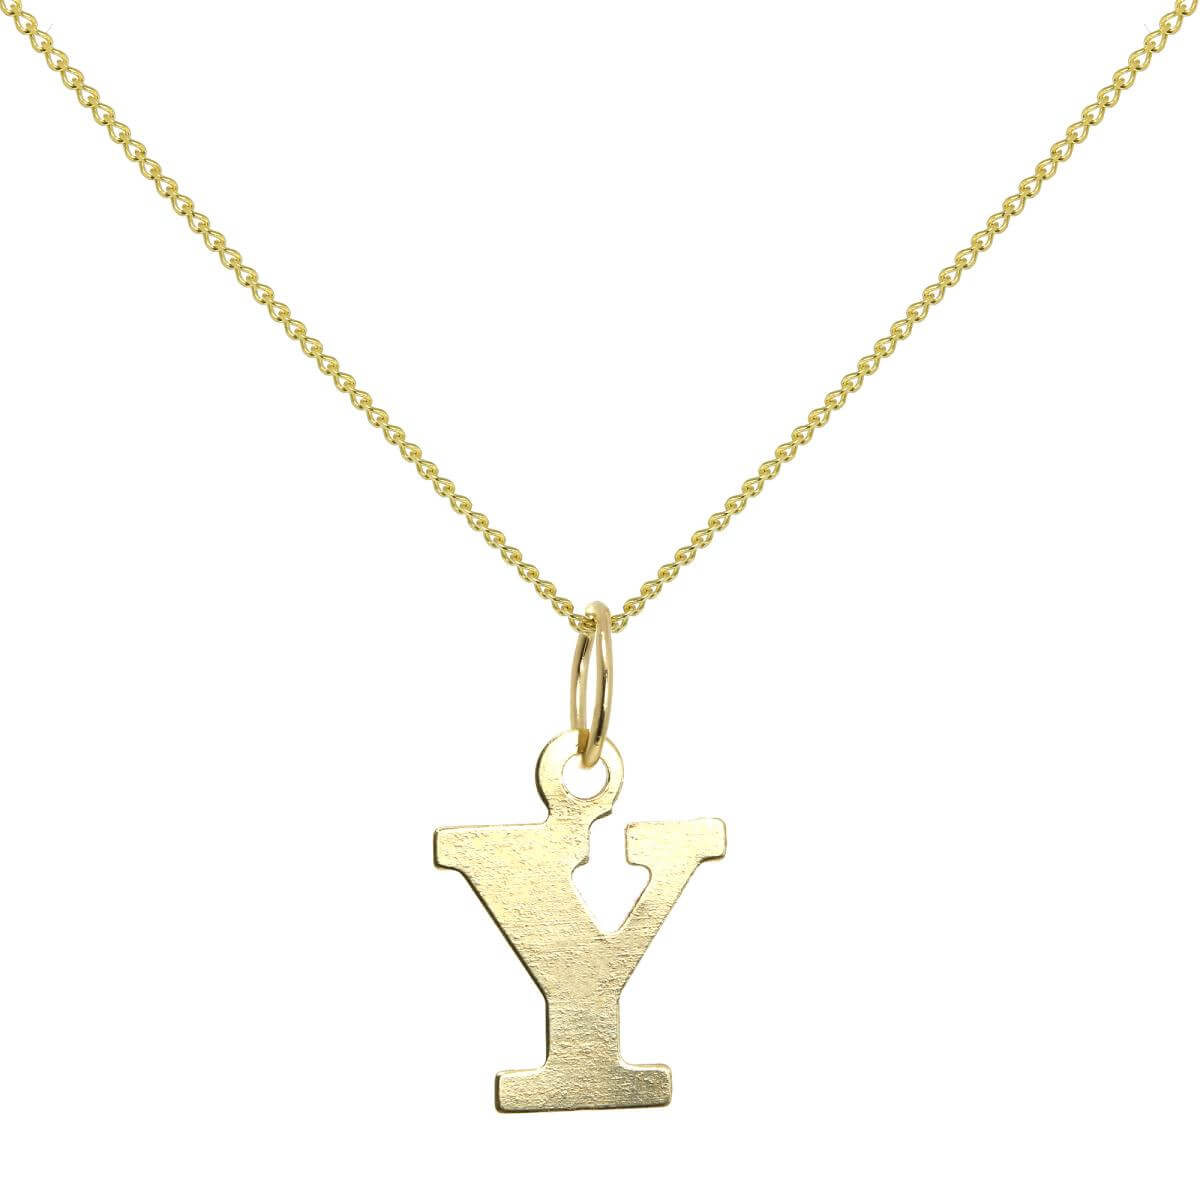 Lightweight 9ct Gold Initial Letter Y Necklace 16 - 20 Inches